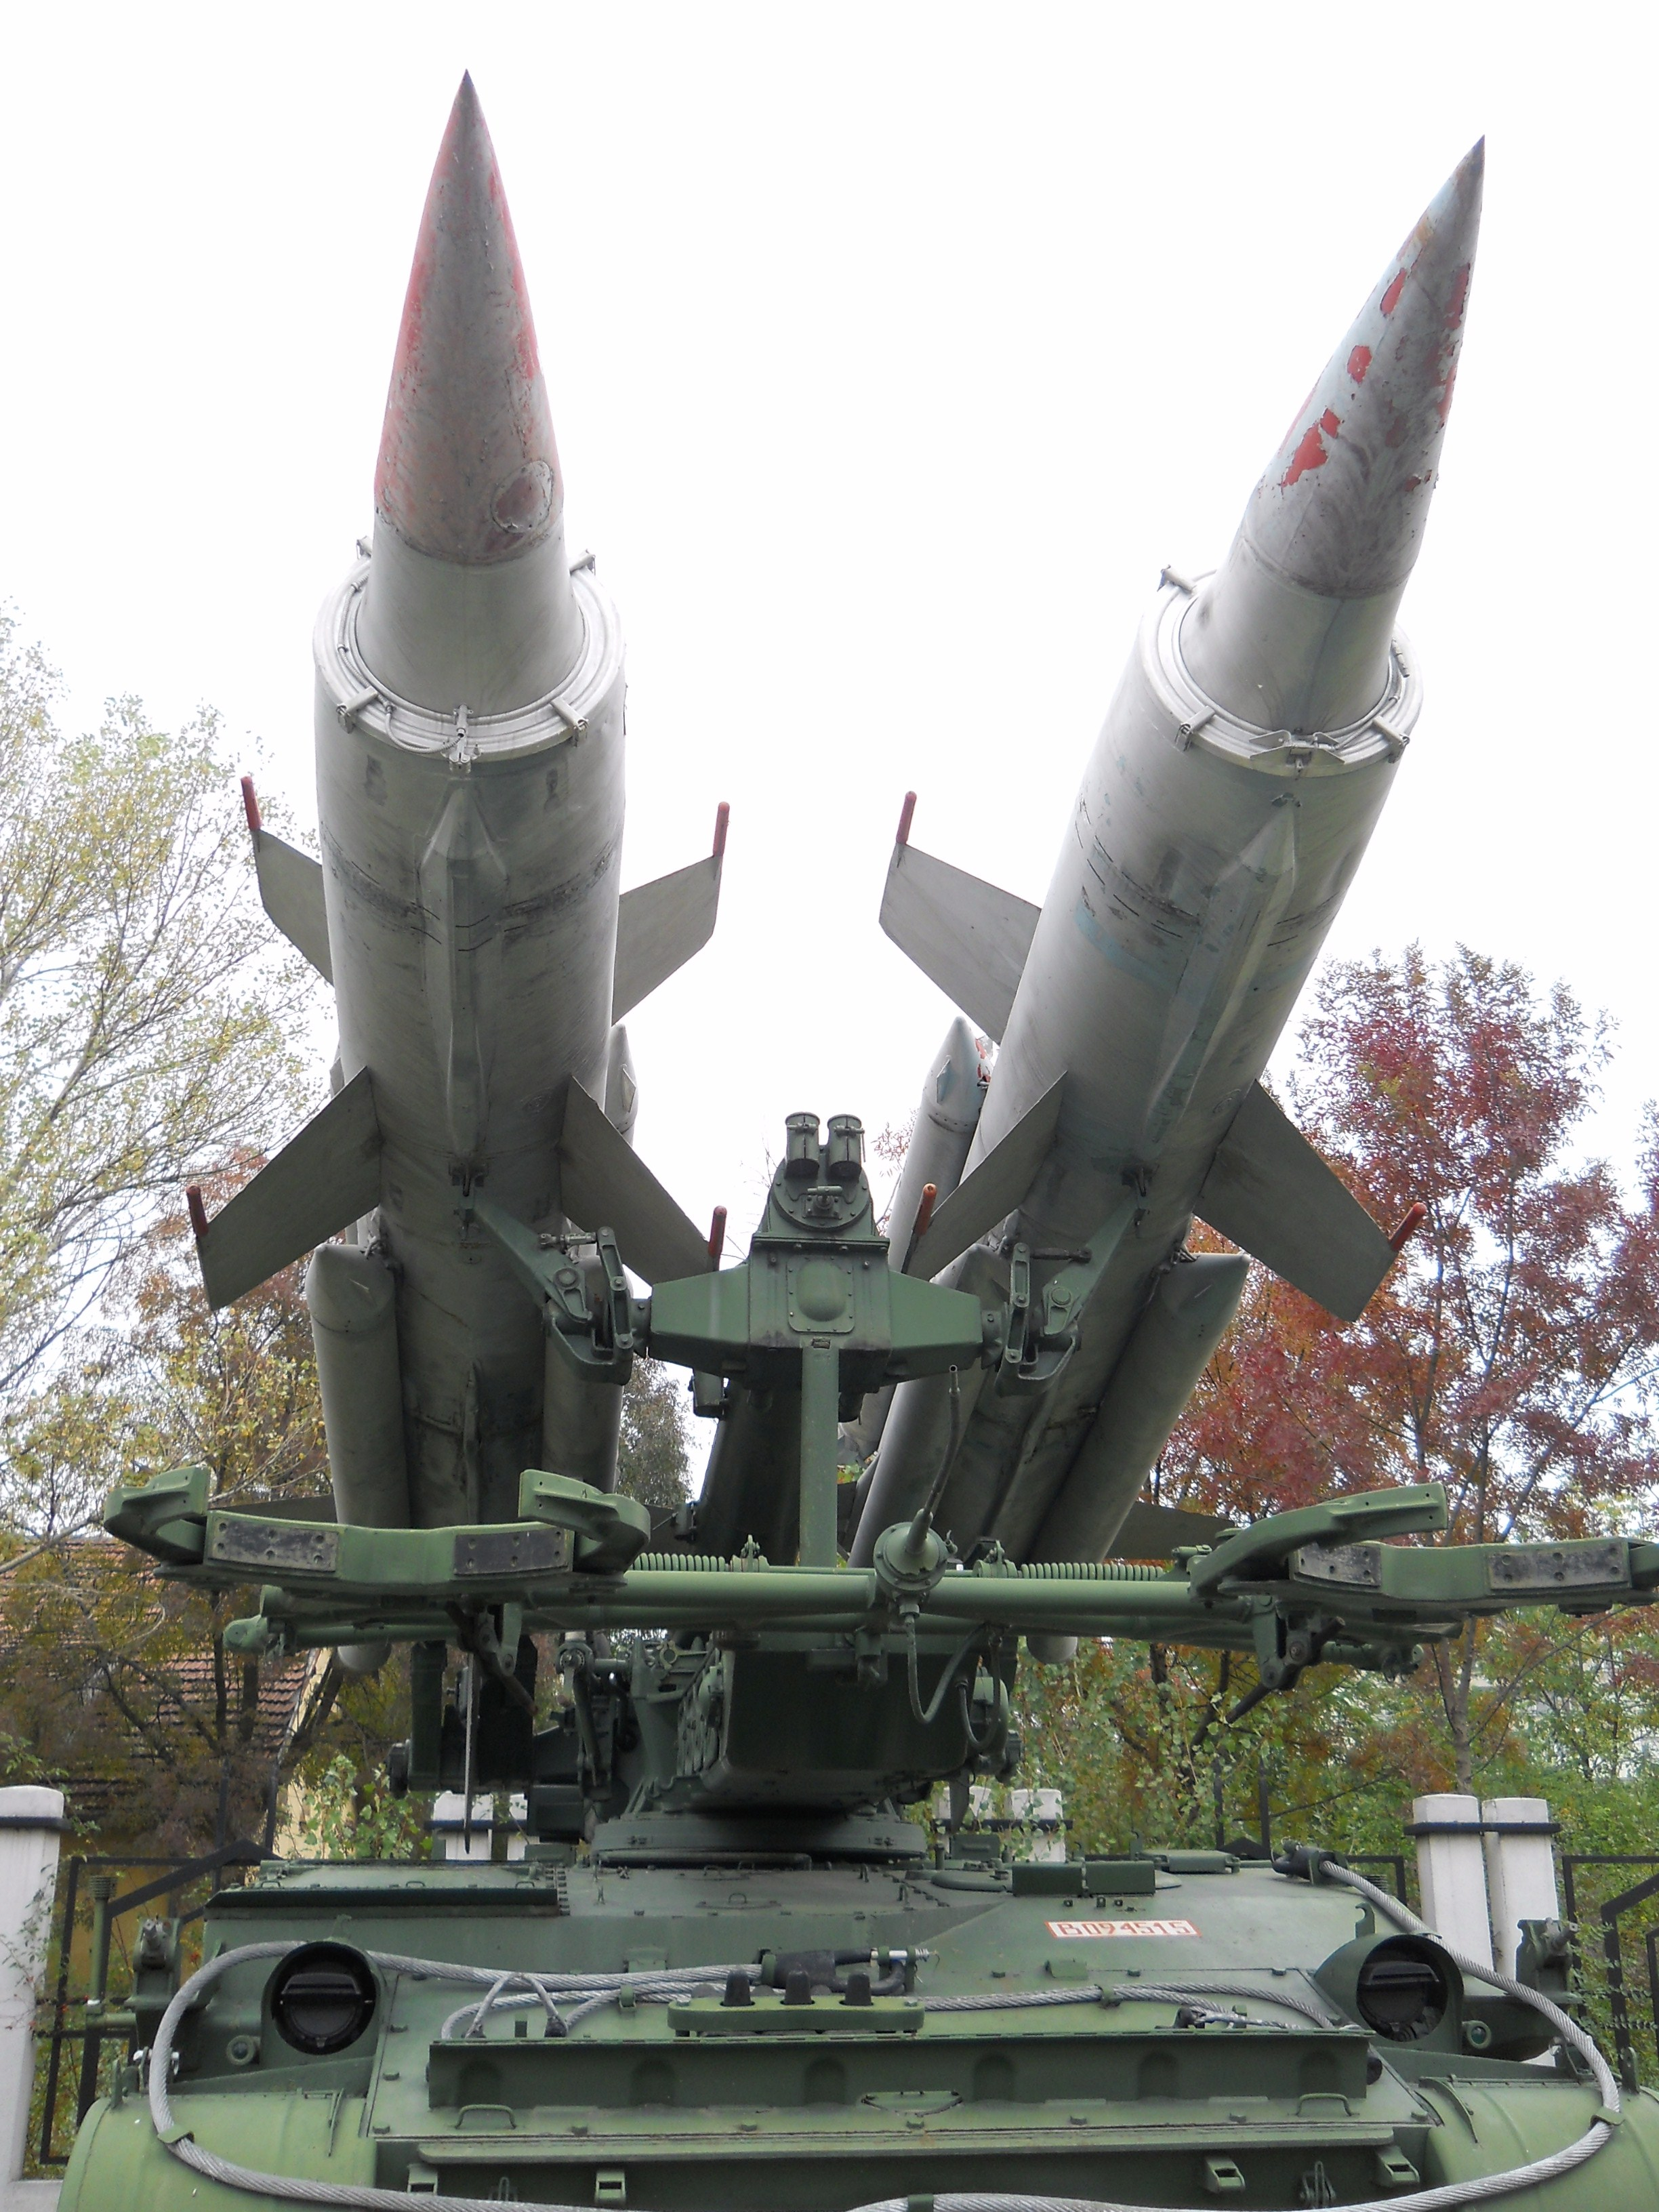 File2K11 Krug missiles National Museum of Military  : 2K11KrugmissilesNationalMuseumofMilitaryHistoryBulgaria from commons.wikimedia.org size 2448 x 3264 jpeg 1341kB